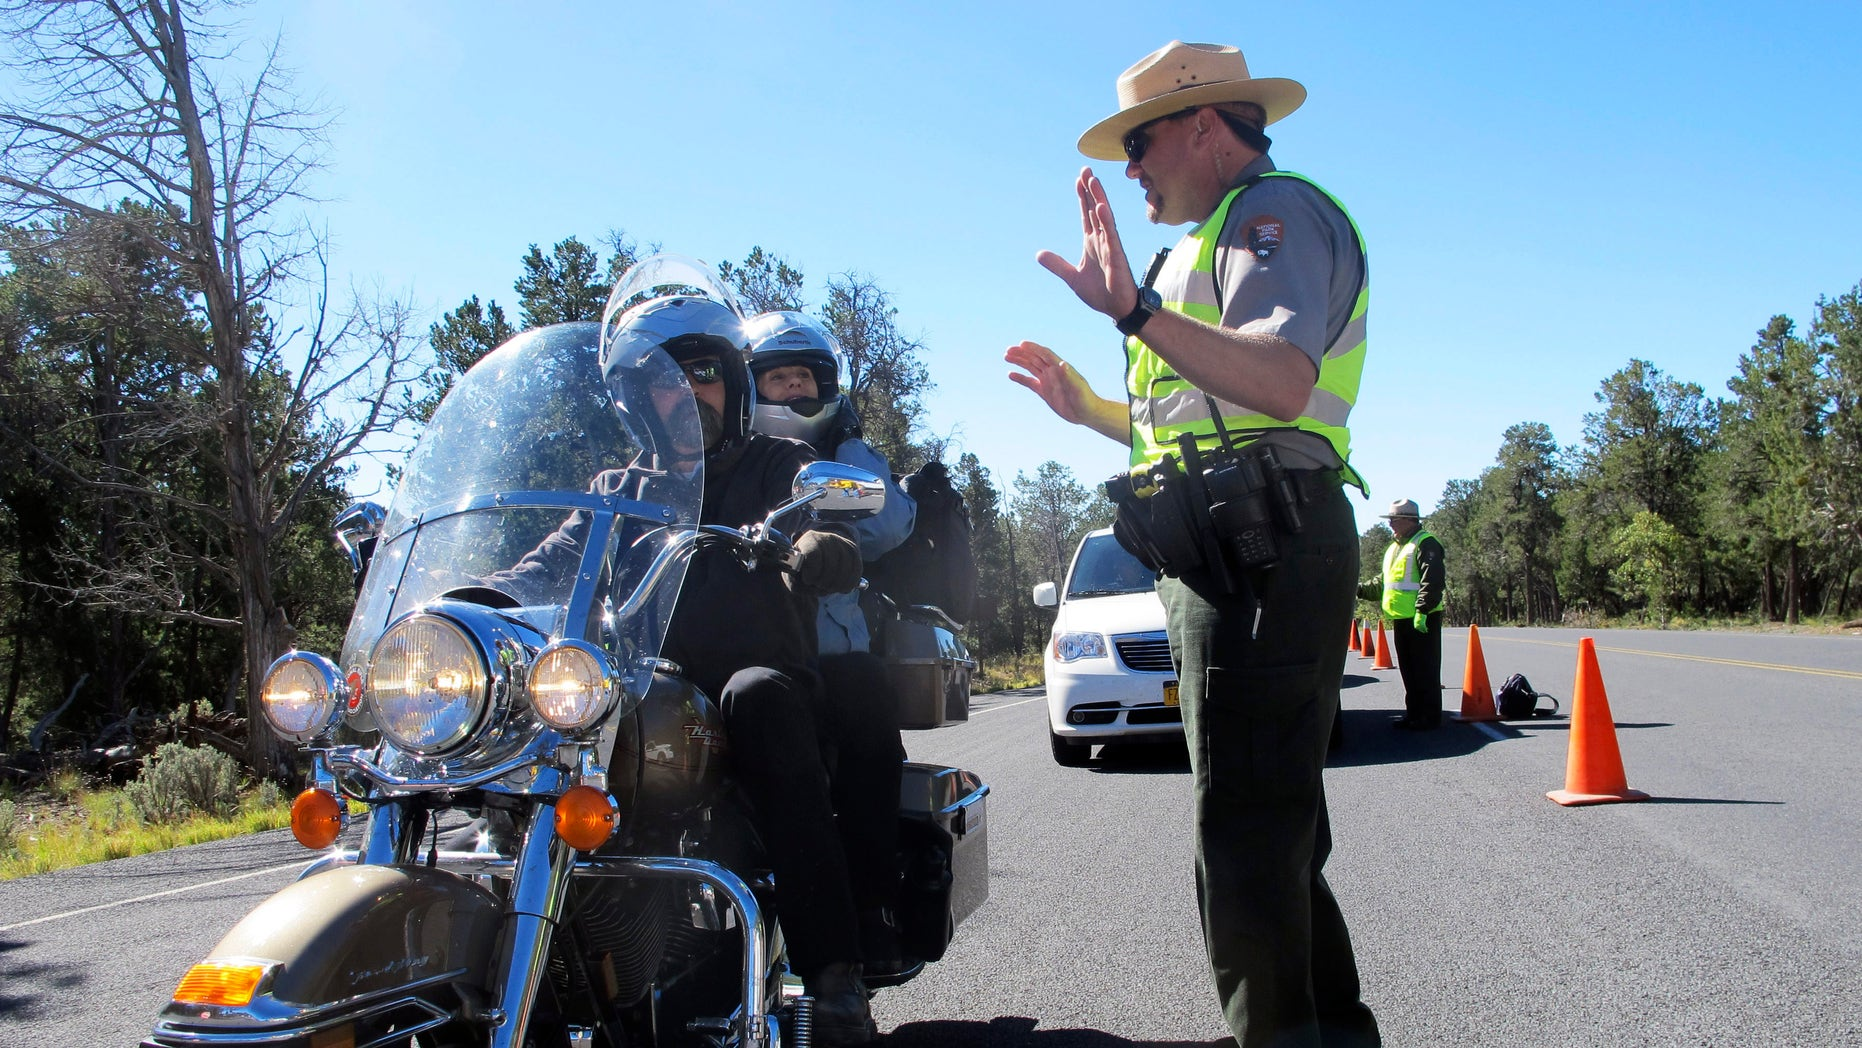 Grand Canyon National Park Ranger Jason Morris talks to people on a motorcycle at the closed park entrance on Thursday, Oct. 3, 2013 in Ariz.  More than 400 national parks are closed as Congress remains deadlocked over federal government funding.  (AP Photo/Brian Skoloff)